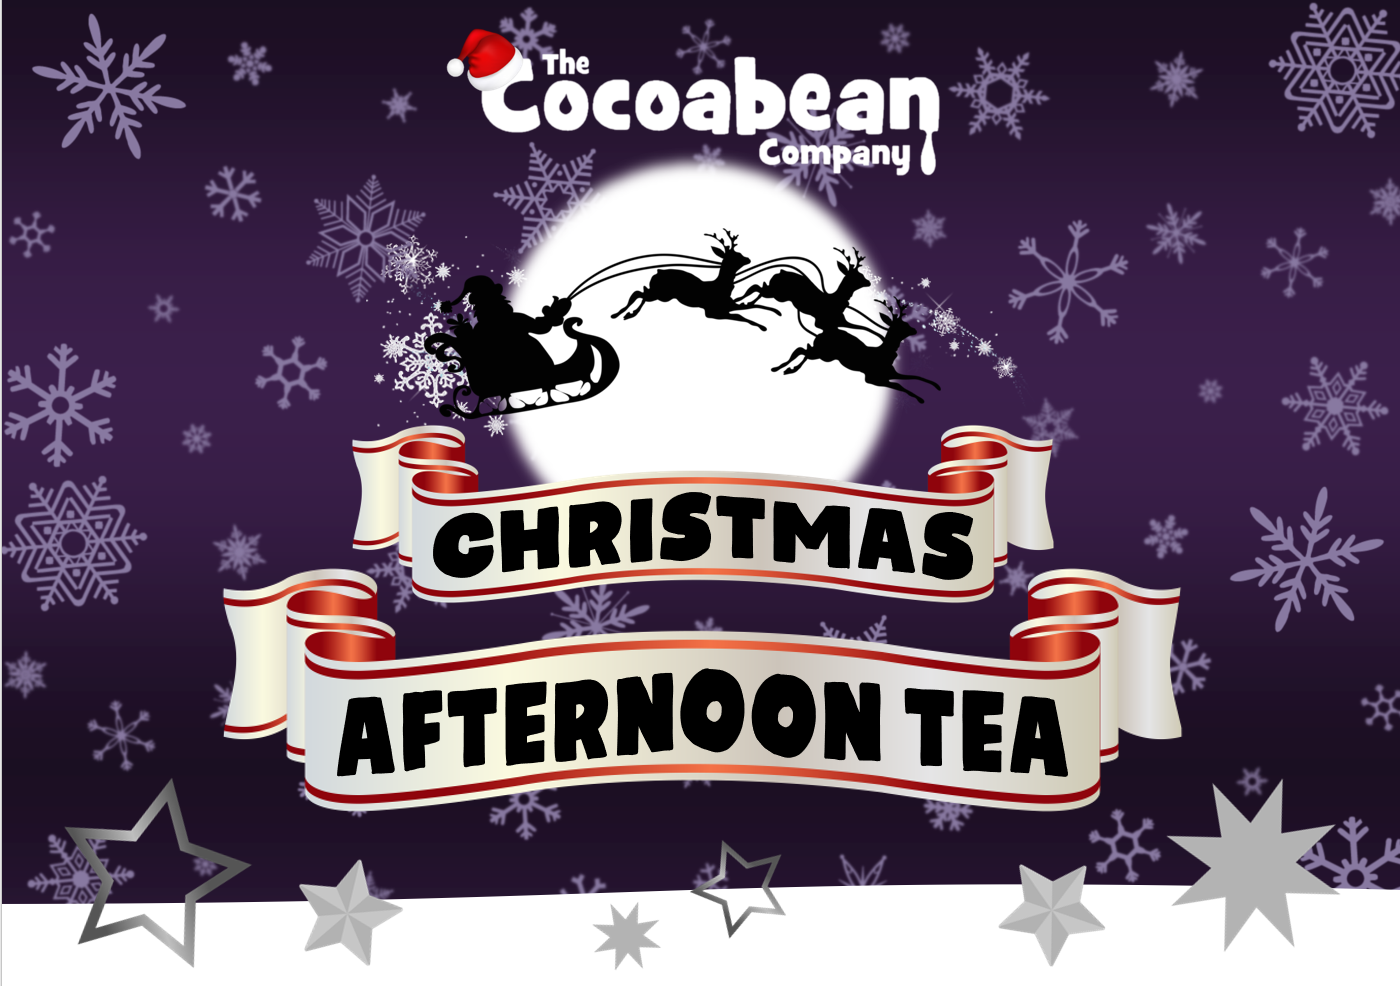 christmas afternoon tea header cocoabean